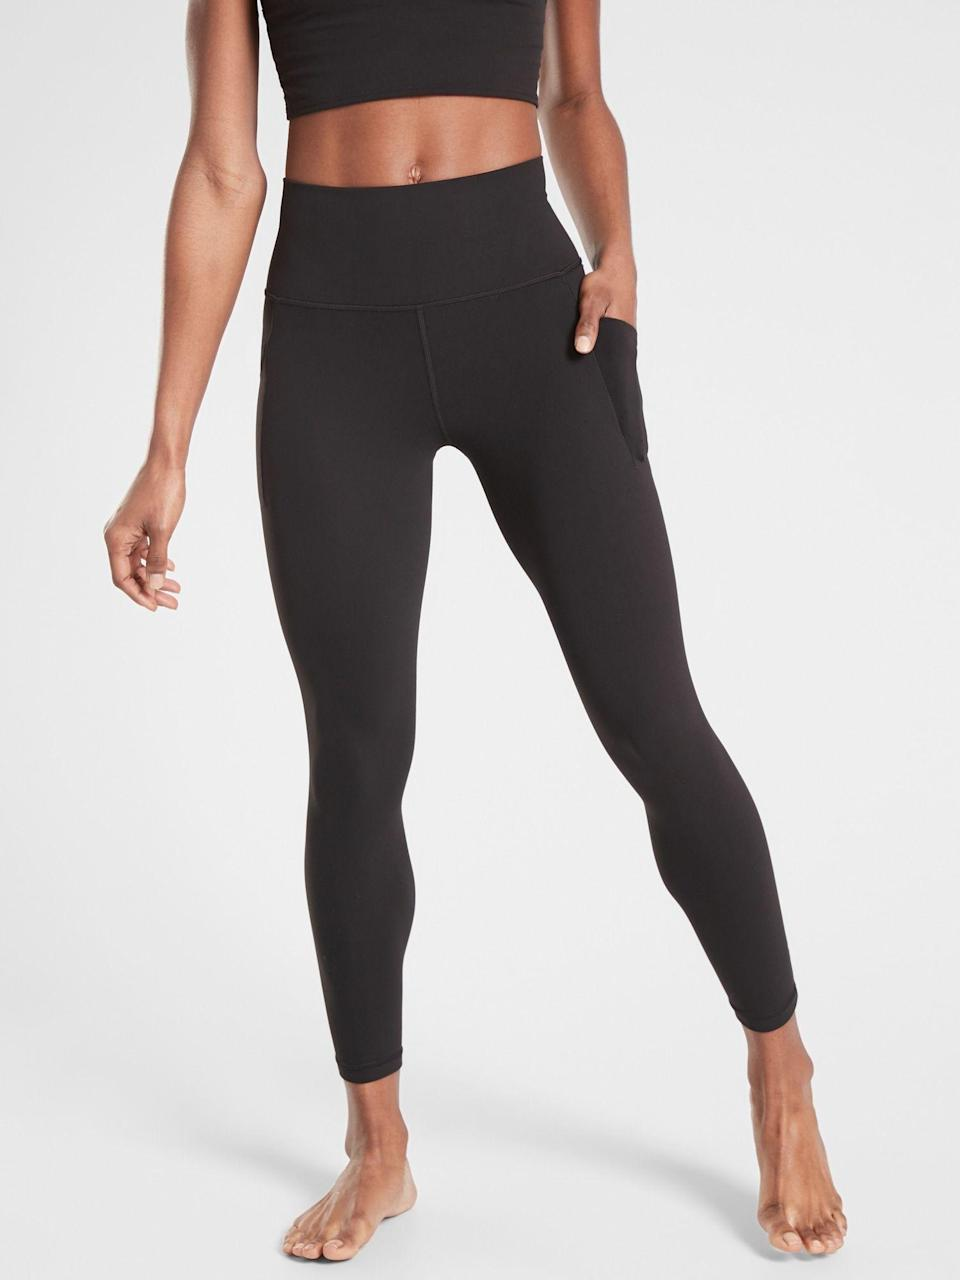 """<p><strong>Athleta</strong></p><p>athleta.gap.com</p><p><strong>$98.00</strong></p><p><a href=""""https://go.redirectingat.com?id=74968X1596630&url=https%3A%2F%2Fathleta.gap.com%2Fbrowse%2Fproduct.do%3Fpid%3D531321012%26cid%3D1059481%26pcid%3D1059481%26vid%3D1%26grid%3Dpds_3_97_1%26cpos%3D3%26cexp%3D1501%26kcid%3DCategoryIDs%253D1059481%26cvar%3D11270%26ctype%3DListing%26cpid%3Dres2007201341333286110932%23pdp-page-content&sref=https%3A%2F%2Fwww.goodhousekeeping.com%2Fclothing%2Fg27206929%2Fbest-black-leggings%2F"""" rel=""""nofollow noopener"""" target=""""_blank"""" data-ylk=""""slk:Shop Now"""" class=""""link rapid-noclick-resp"""">Shop Now</a></p><p>Most leggings don't come with pockets, but these black yoga leggings have <strong>deep pockets on the sides that lie flat against your leg so they don't stick out</strong><strong>.</strong> They're made of Athelta's popular Powervita fabric, which is soft, smooth and slightly compressive.</p><p>On top of the comfort and convenience, these are available in regular, petite, tall and plus sizes so they're perfect for a variety of body types. And if you prefer shorter styles, you can find these in a <a href=""""https://go.redirectingat.com?id=74968X1596630&url=https%3A%2F%2Fathleta.gap.com%2Fbrowse%2Fproduct.do%3Fpid%3D531304002&sref=https%3A%2F%2Fwww.goodhousekeeping.com%2Fclothing%2Fg27206929%2Fbest-black-leggings%2F"""" rel=""""nofollow noopener"""" target=""""_blank"""" data-ylk=""""slk:capri"""" class=""""link rapid-noclick-resp"""">capri</a> or a <a href=""""https://go.redirectingat.com?id=74968X1596630&url=https%3A%2F%2Fathleta.gap.com%2Fbrowse%2Fproduct.do%3Fpid%3D531302002&sref=https%3A%2F%2Fwww.goodhousekeeping.com%2Fclothing%2Fg27206929%2Fbest-black-leggings%2F"""" rel=""""nofollow noopener"""" target=""""_blank"""" data-ylk=""""slk:short"""" class=""""link rapid-noclick-resp"""">short</a>, both of which also have pockets.</p>"""